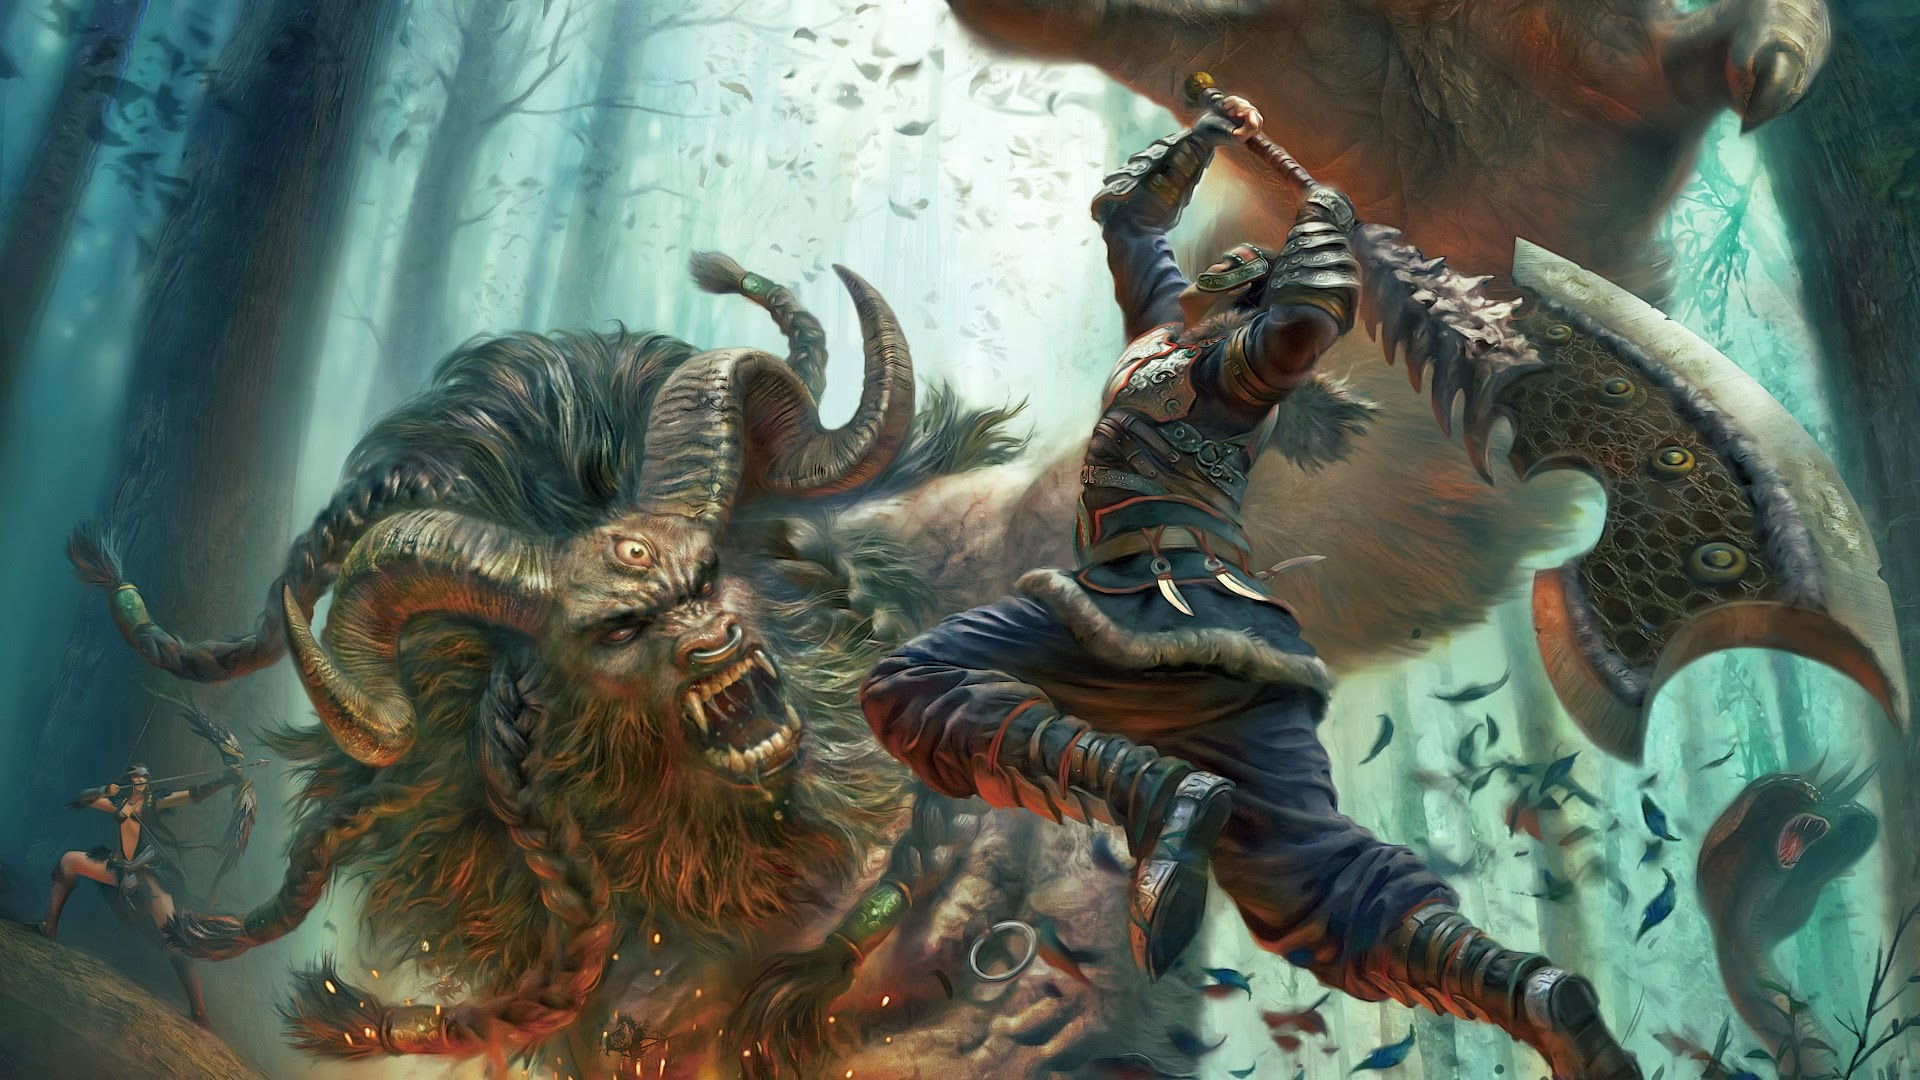 Epic Beast Warrior Fighting Wallpaper Hd Fantasy Weapon 1920x1080 A690